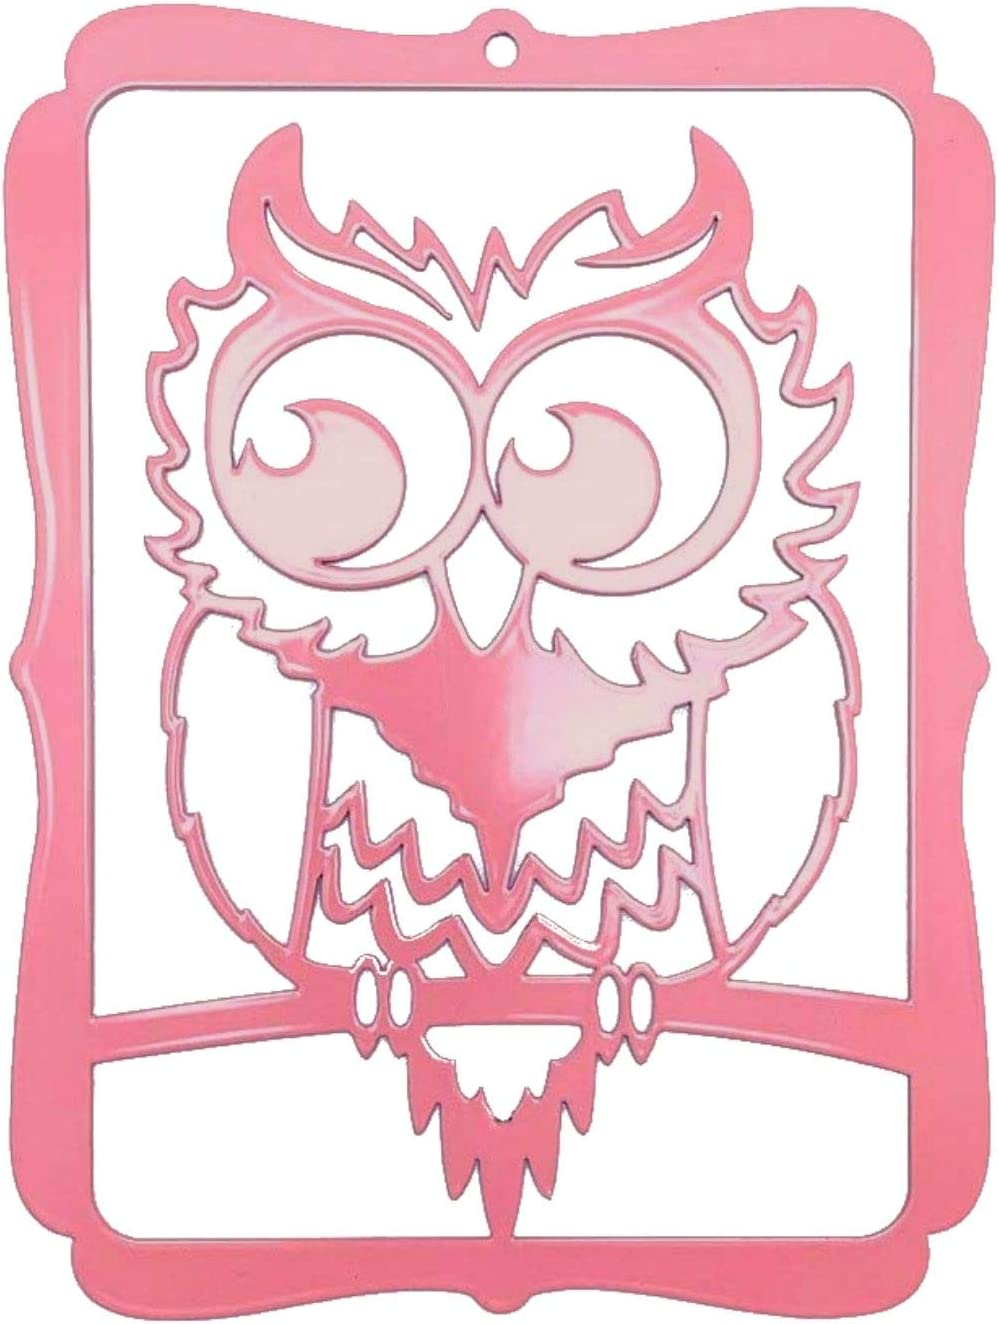 Pet-Deco Owl Home Decor- Metal Owl Wall Decor for Doors, Living Room, Kitchen, Office or Kids Room- Symbolizes Magic, Wisdom and Mystery, High Grade Steel Plates, Gift for Owl Lovers (Pink Owl)